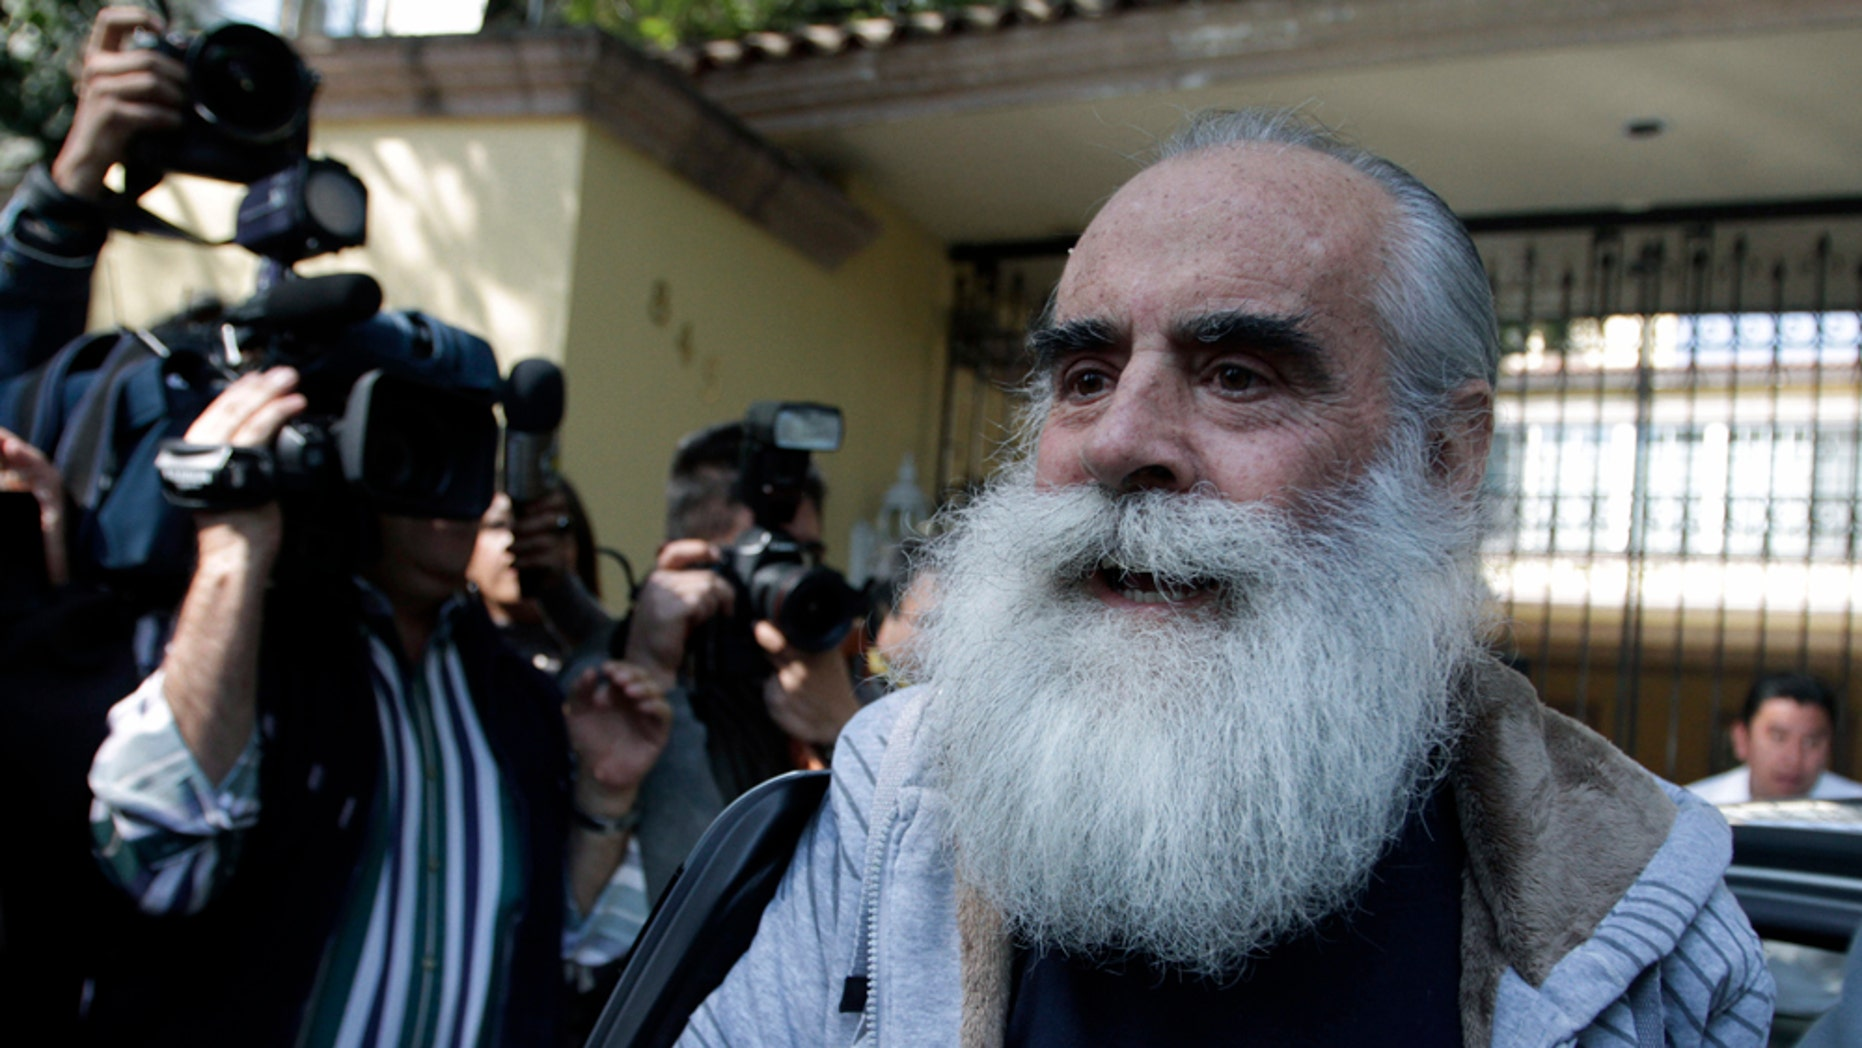 Former presidential candidate Diego Fernandez de Cevallos arrives at his home in Mexico City, Monday, Dec. 20, 2010. Fernandez de Cevallos, who had been missing since May 15, said that he is well, he thanks God and he has forgiven his kidnappers. (AP Photo/Claudio Cruz)